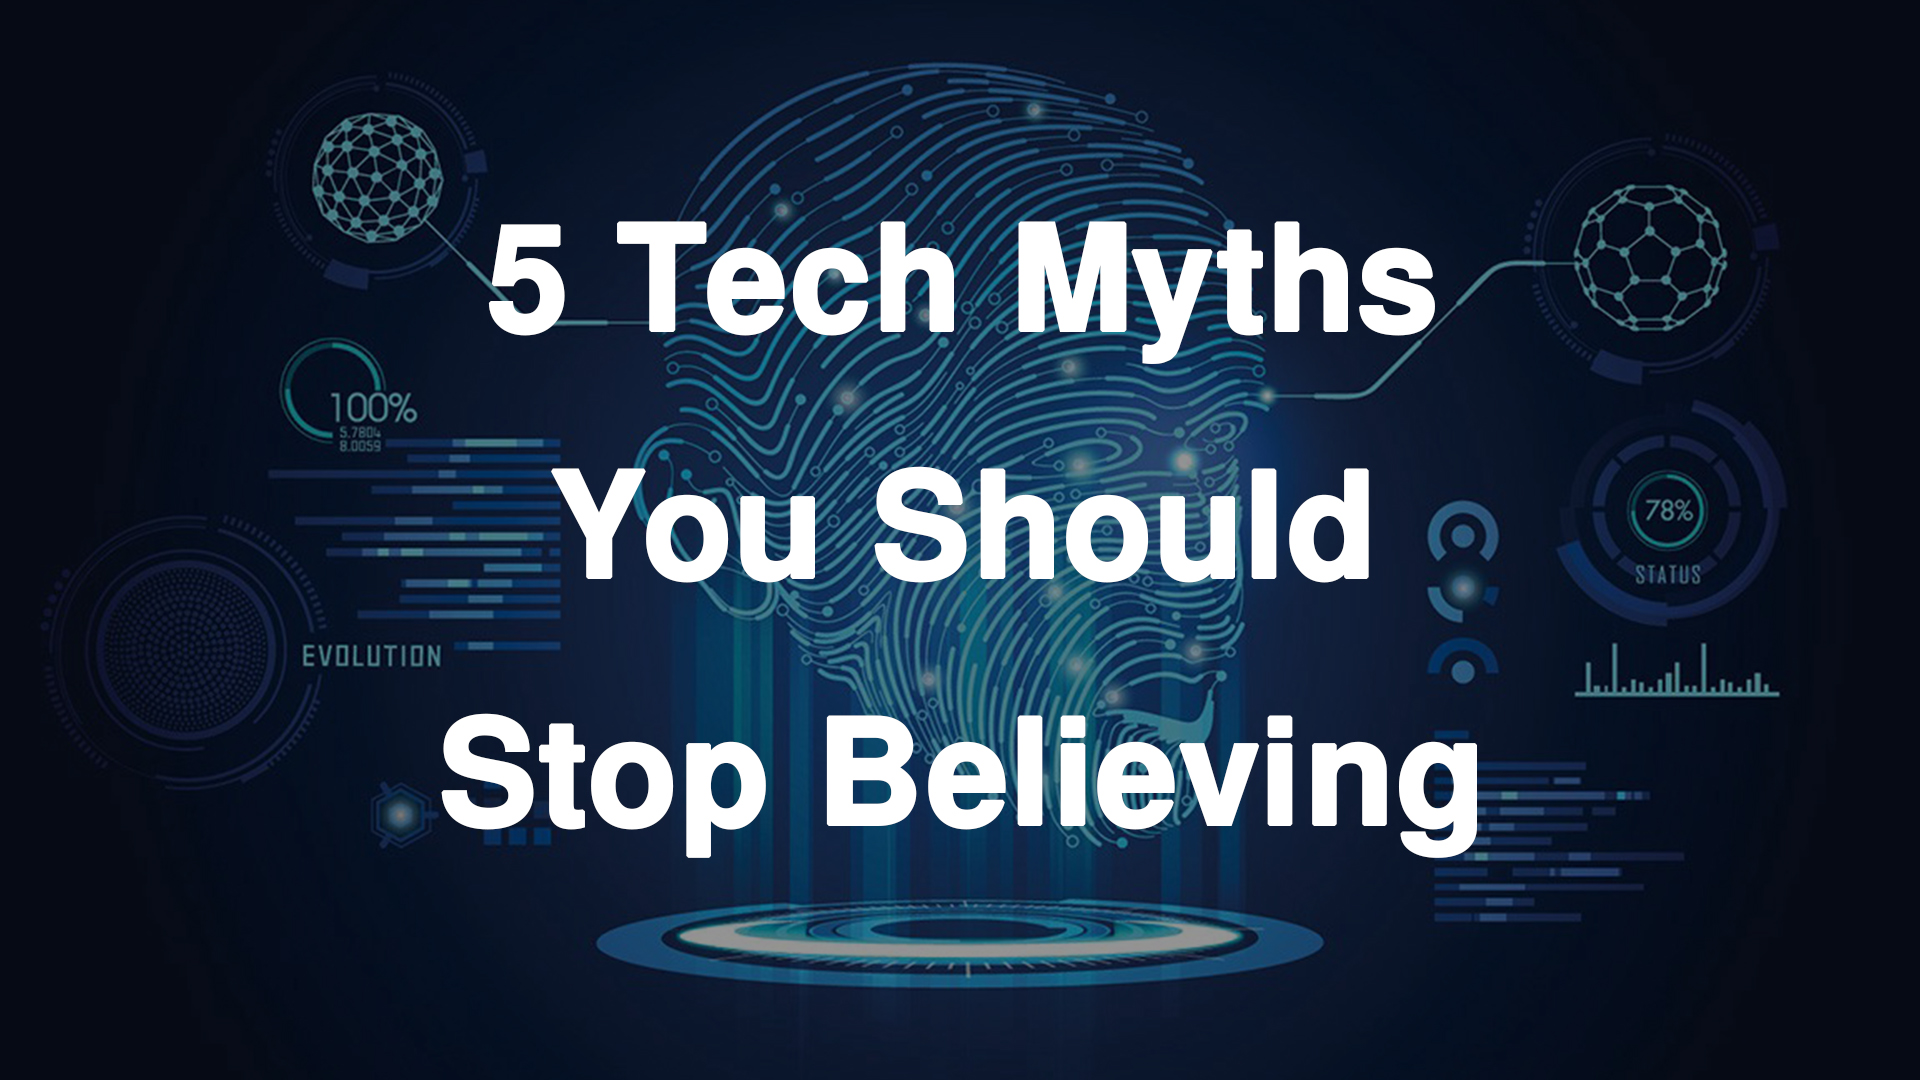 Tech Myths you should know